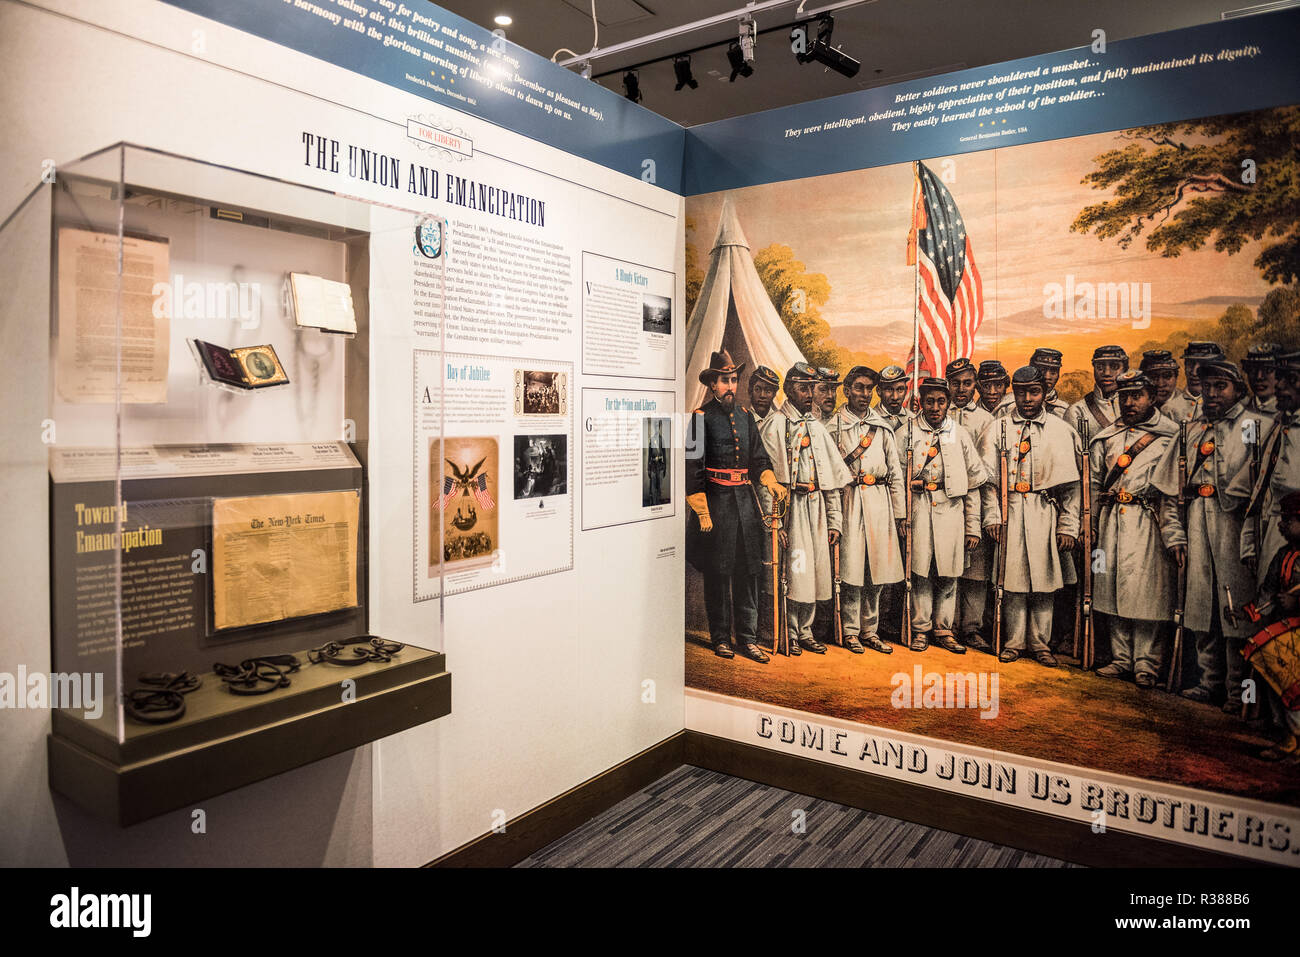 WASHINGTON, DC - The African American Civil War Museum preserves and tells the stories of the united States Colored Troops in the American Civil War. The museum is located in Northwest Washington DC, across the street from the African American Civil War Memorial, in the U Street neighborhood. Stock Photo